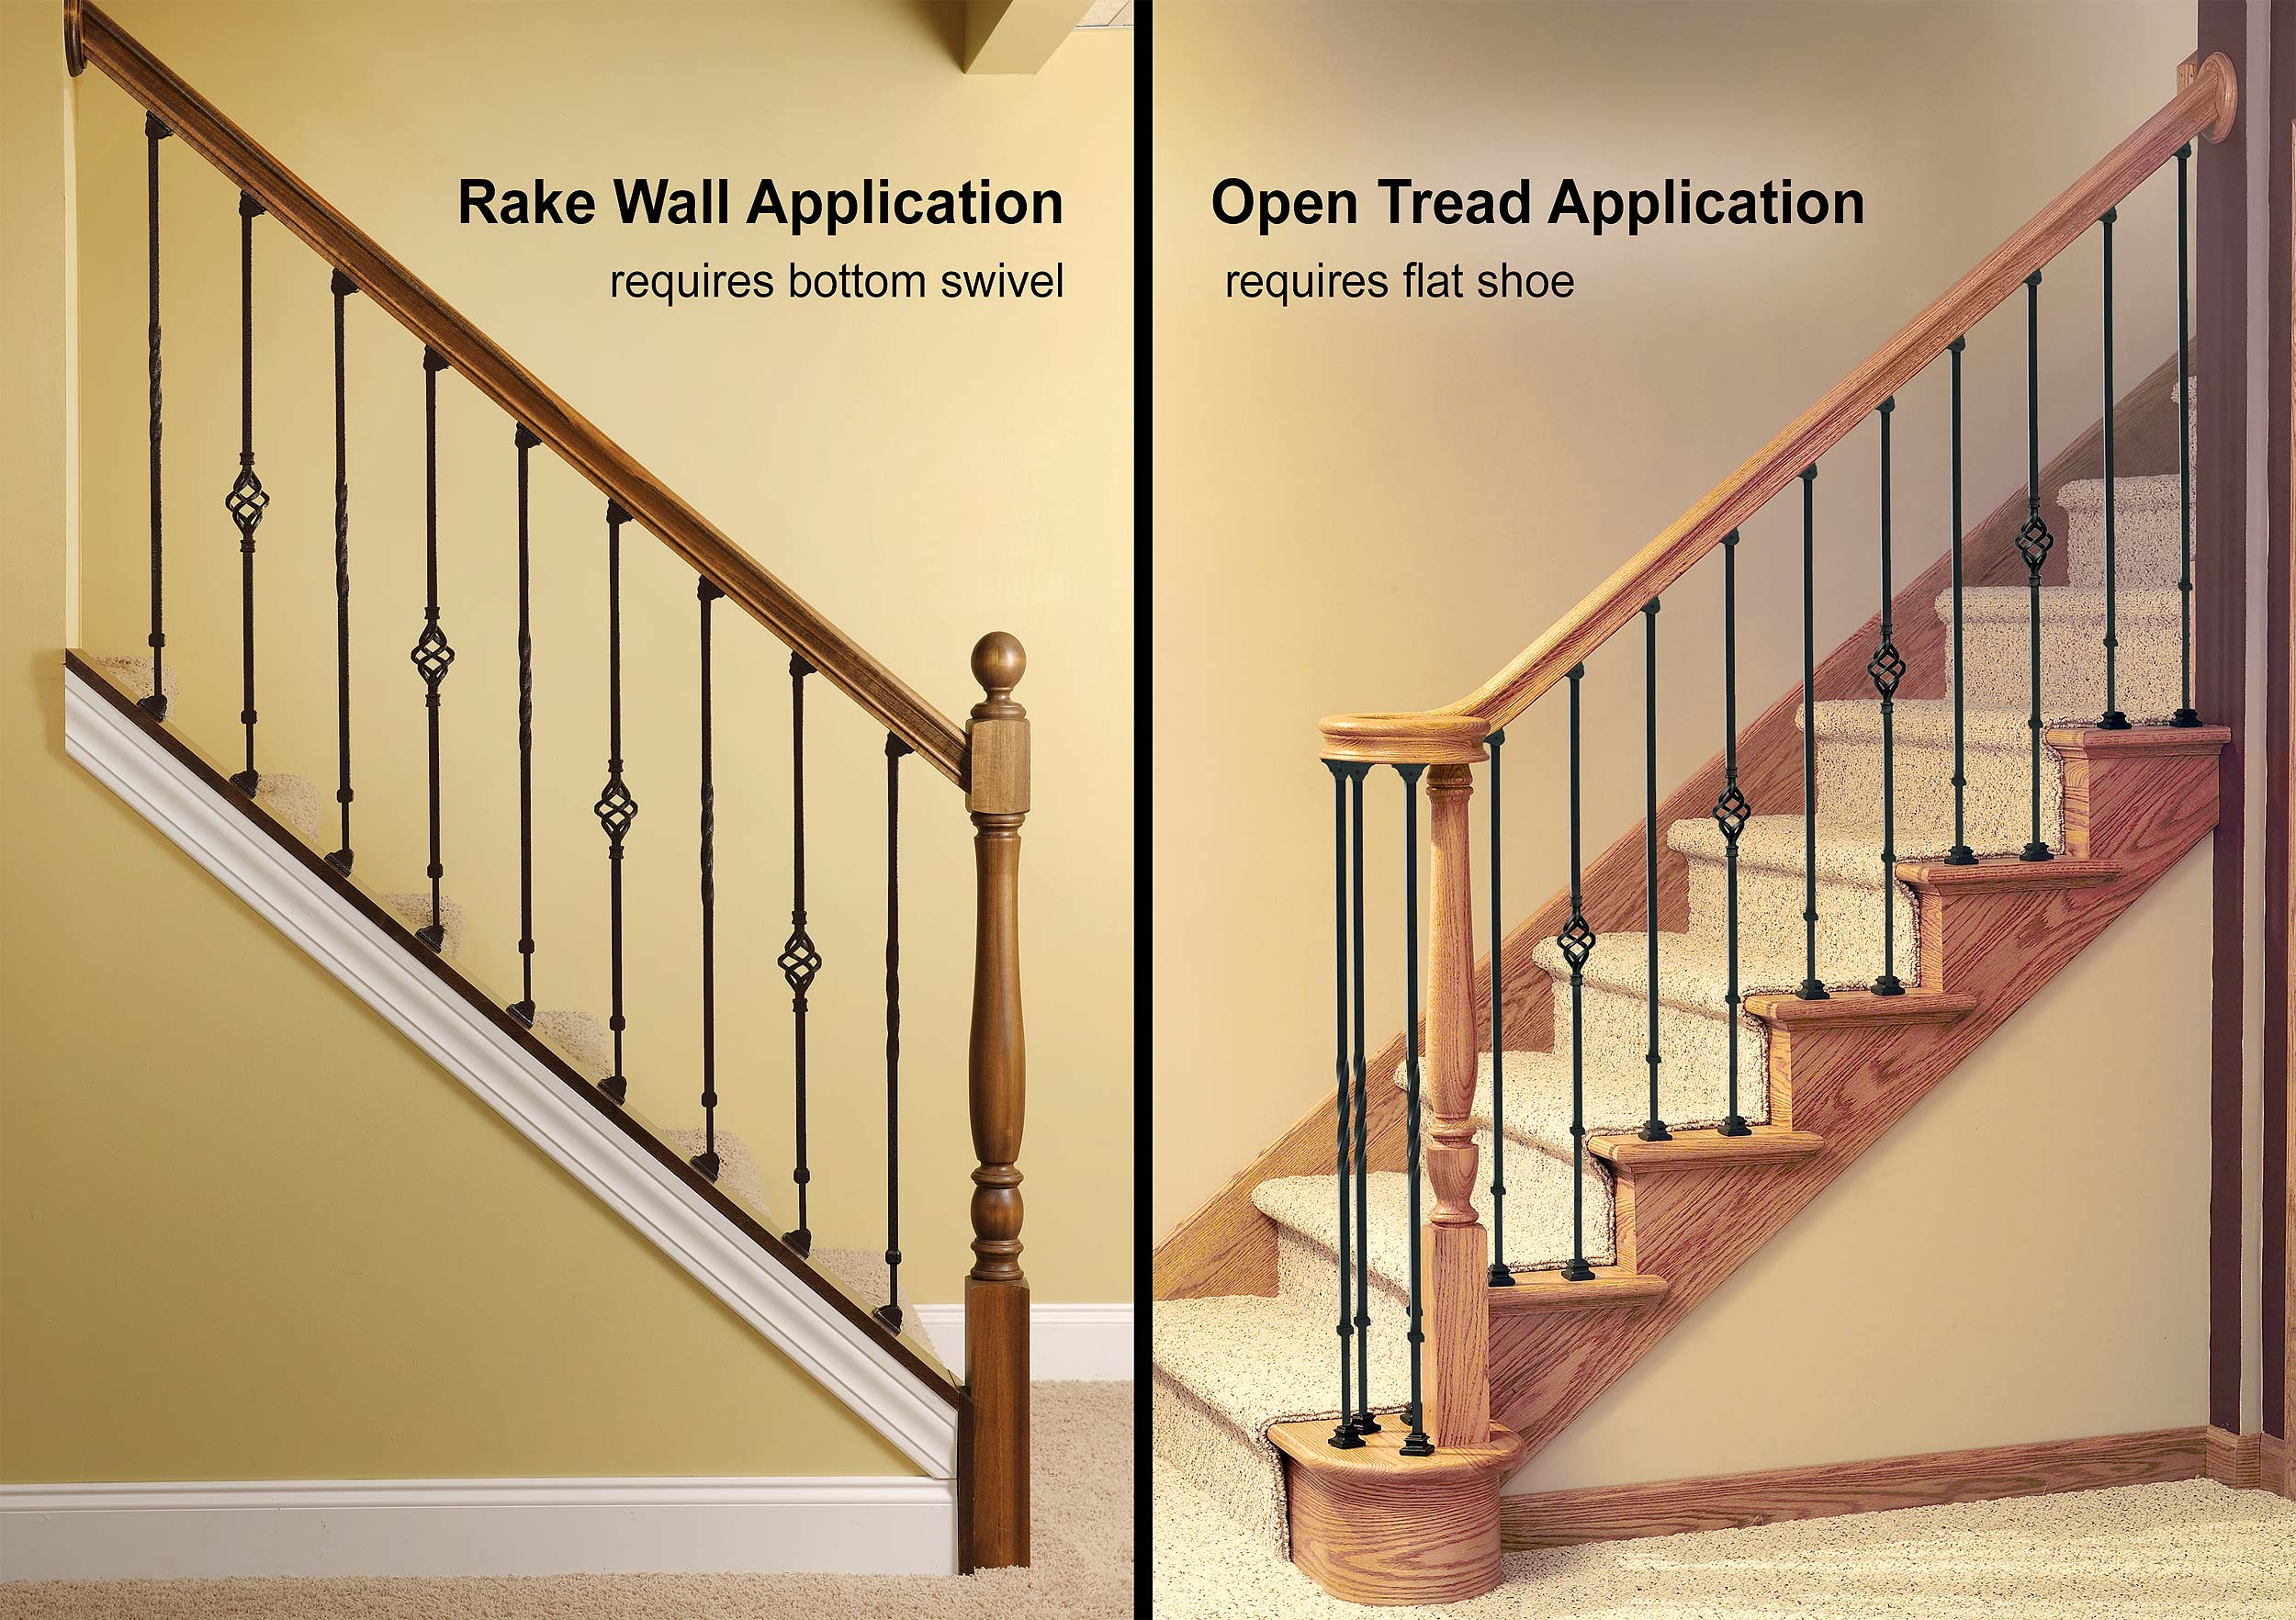 Rake Or Pitch Application And Open Stair Application